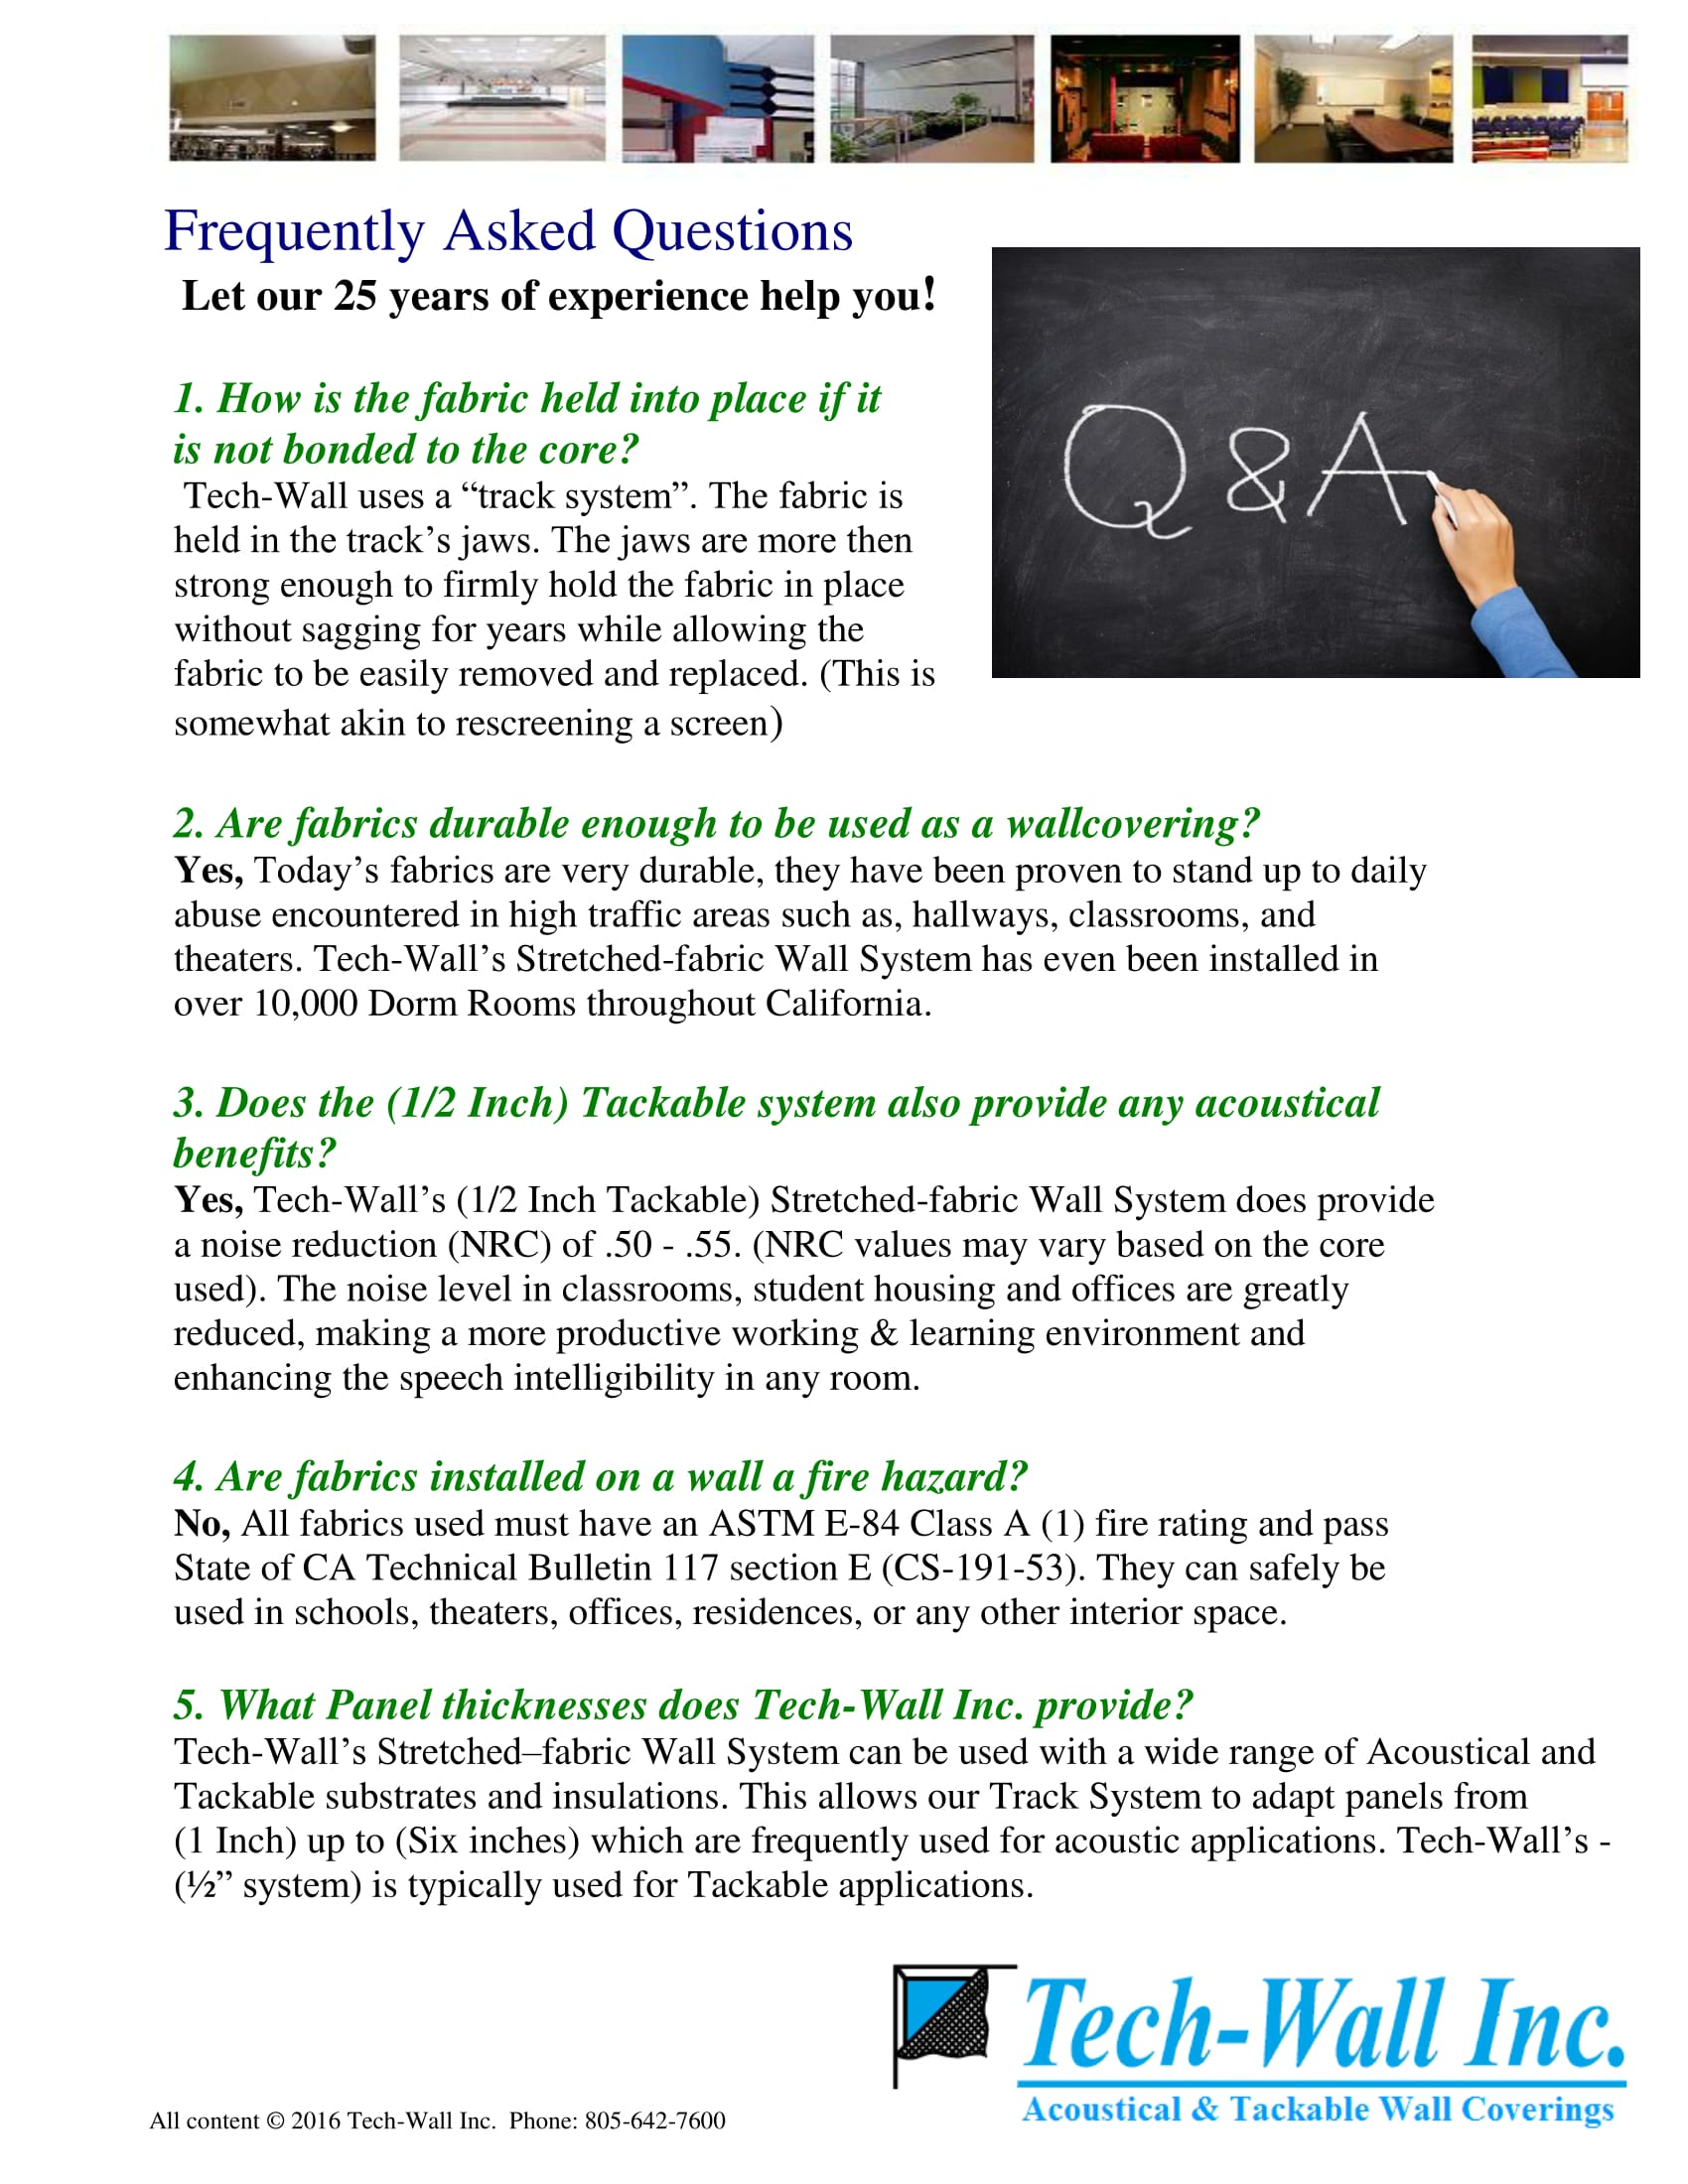 frequently-asked-questions-3-pages-1.jpg